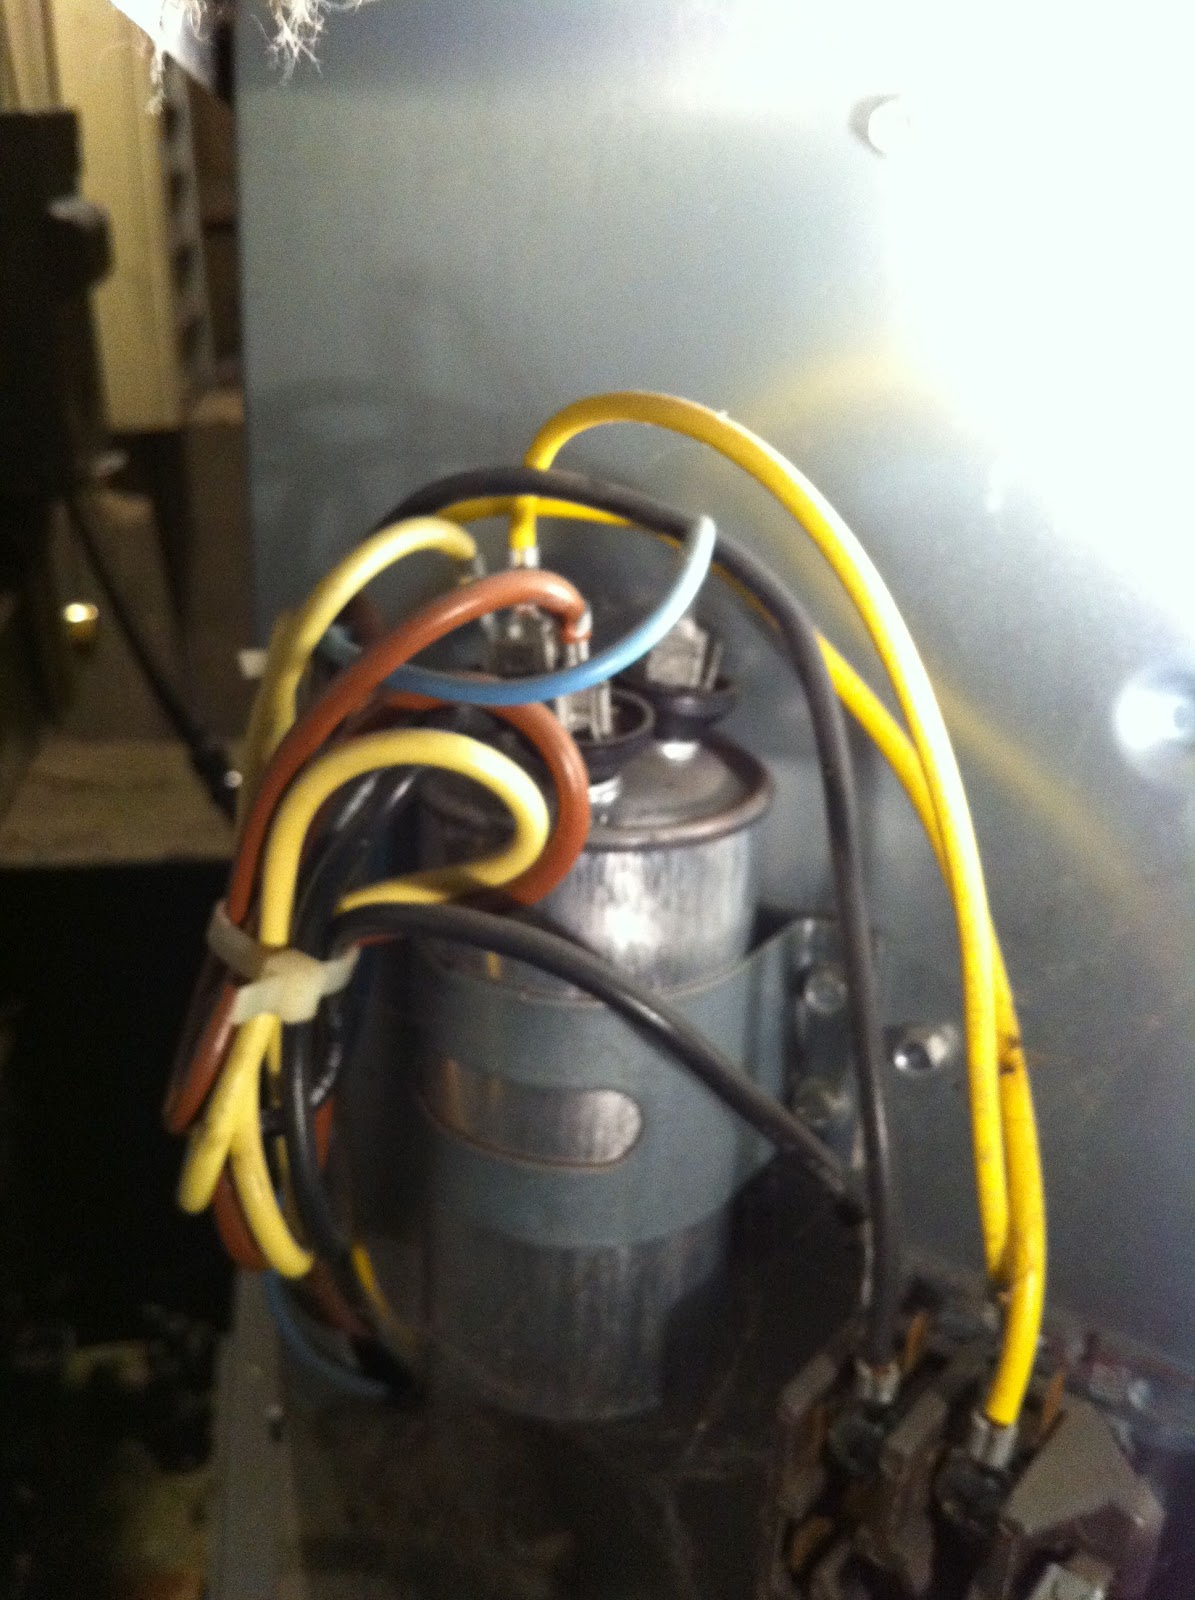 How To Replace Starter Capacitor On Ac Condenser Unit